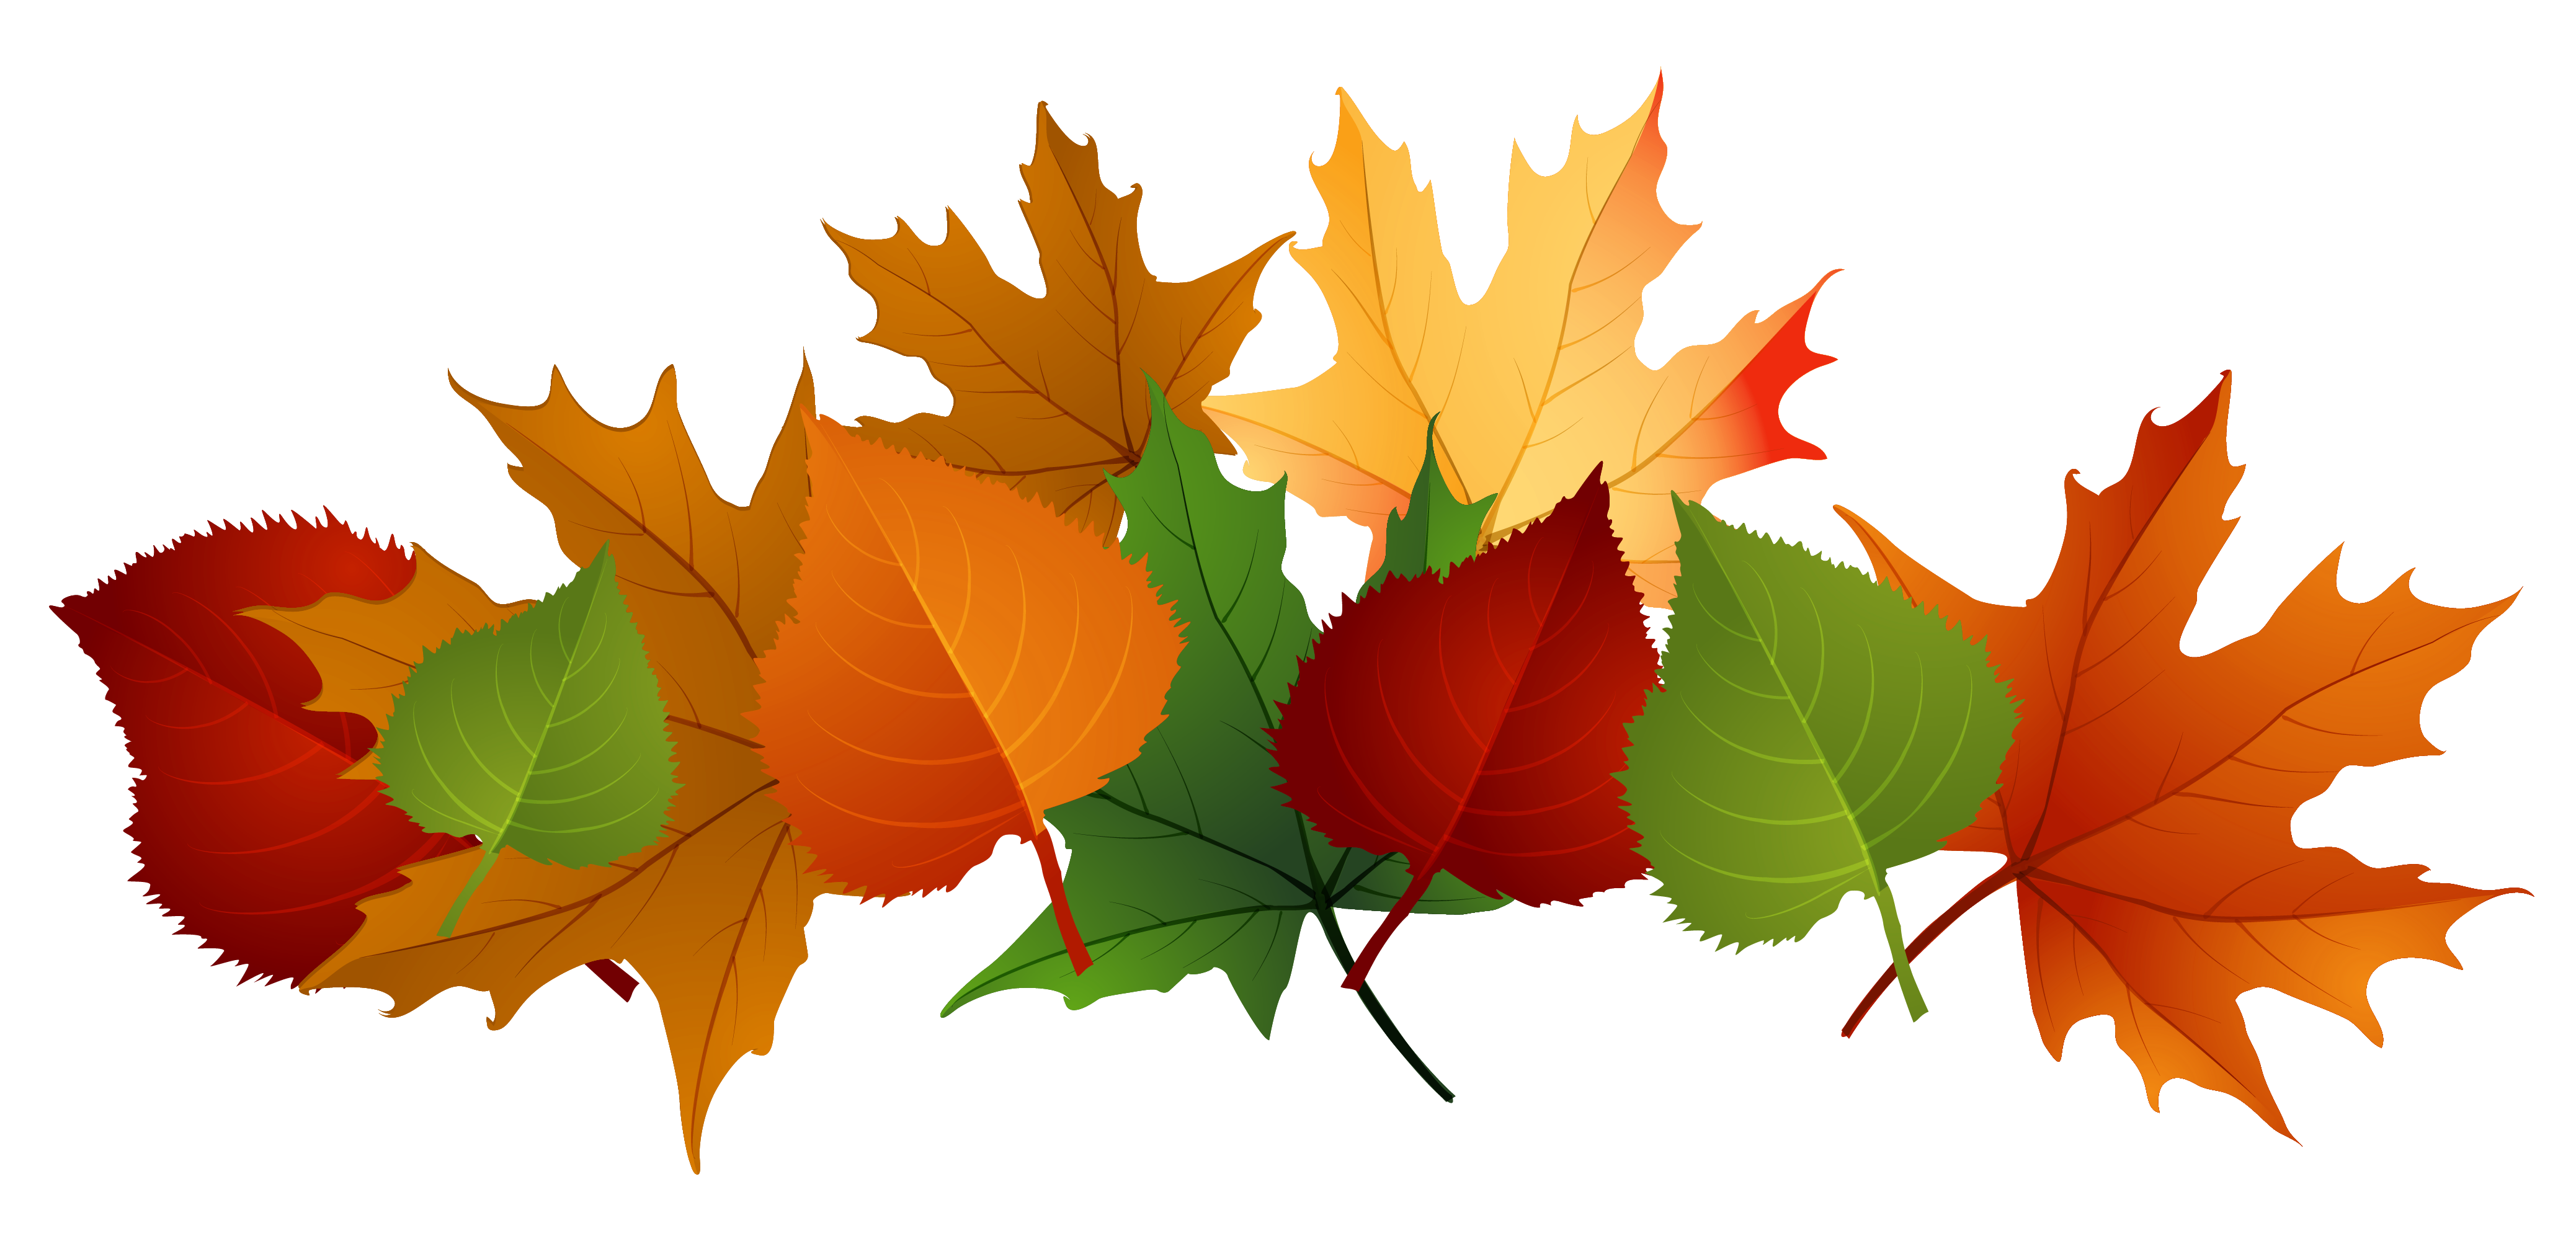 Fall Leaves Fall Png Autumn Png 5